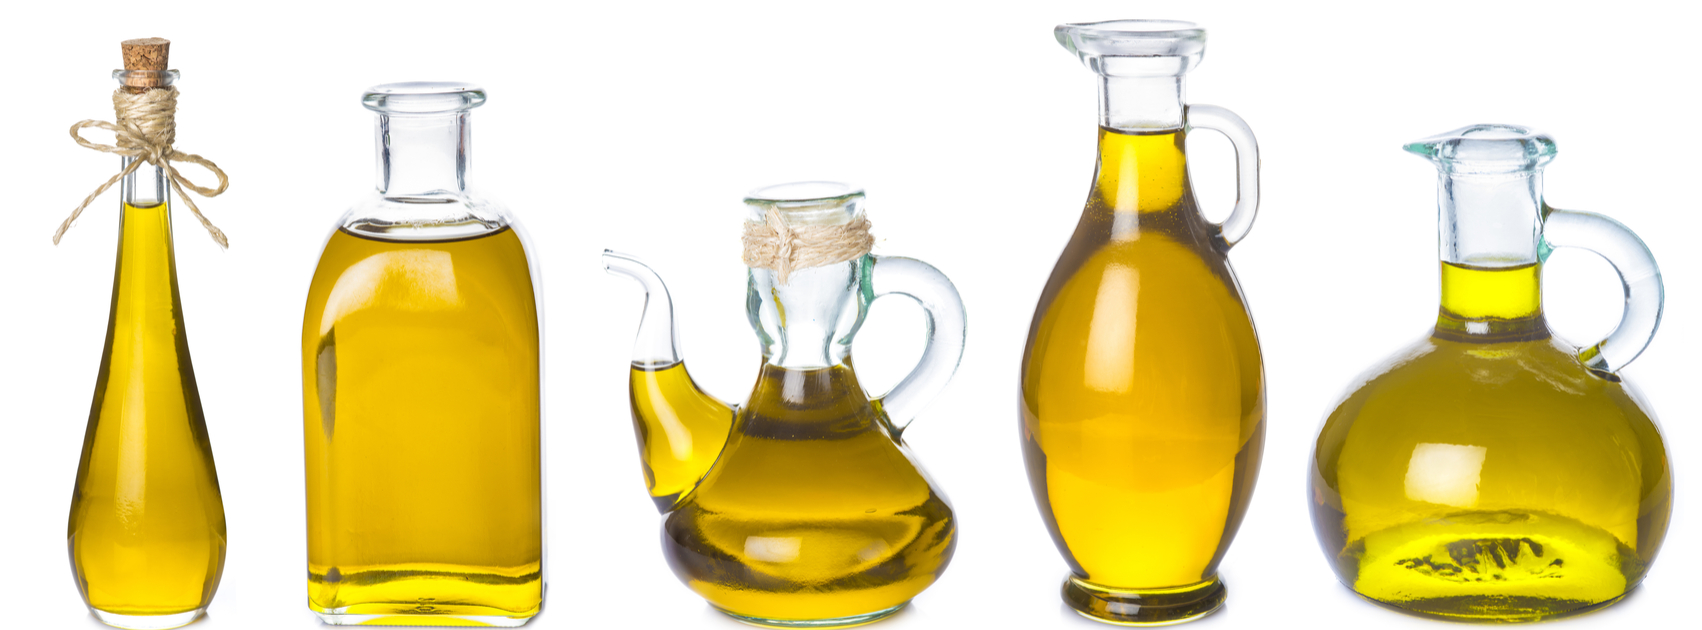 biblical anointing oil uses and applications